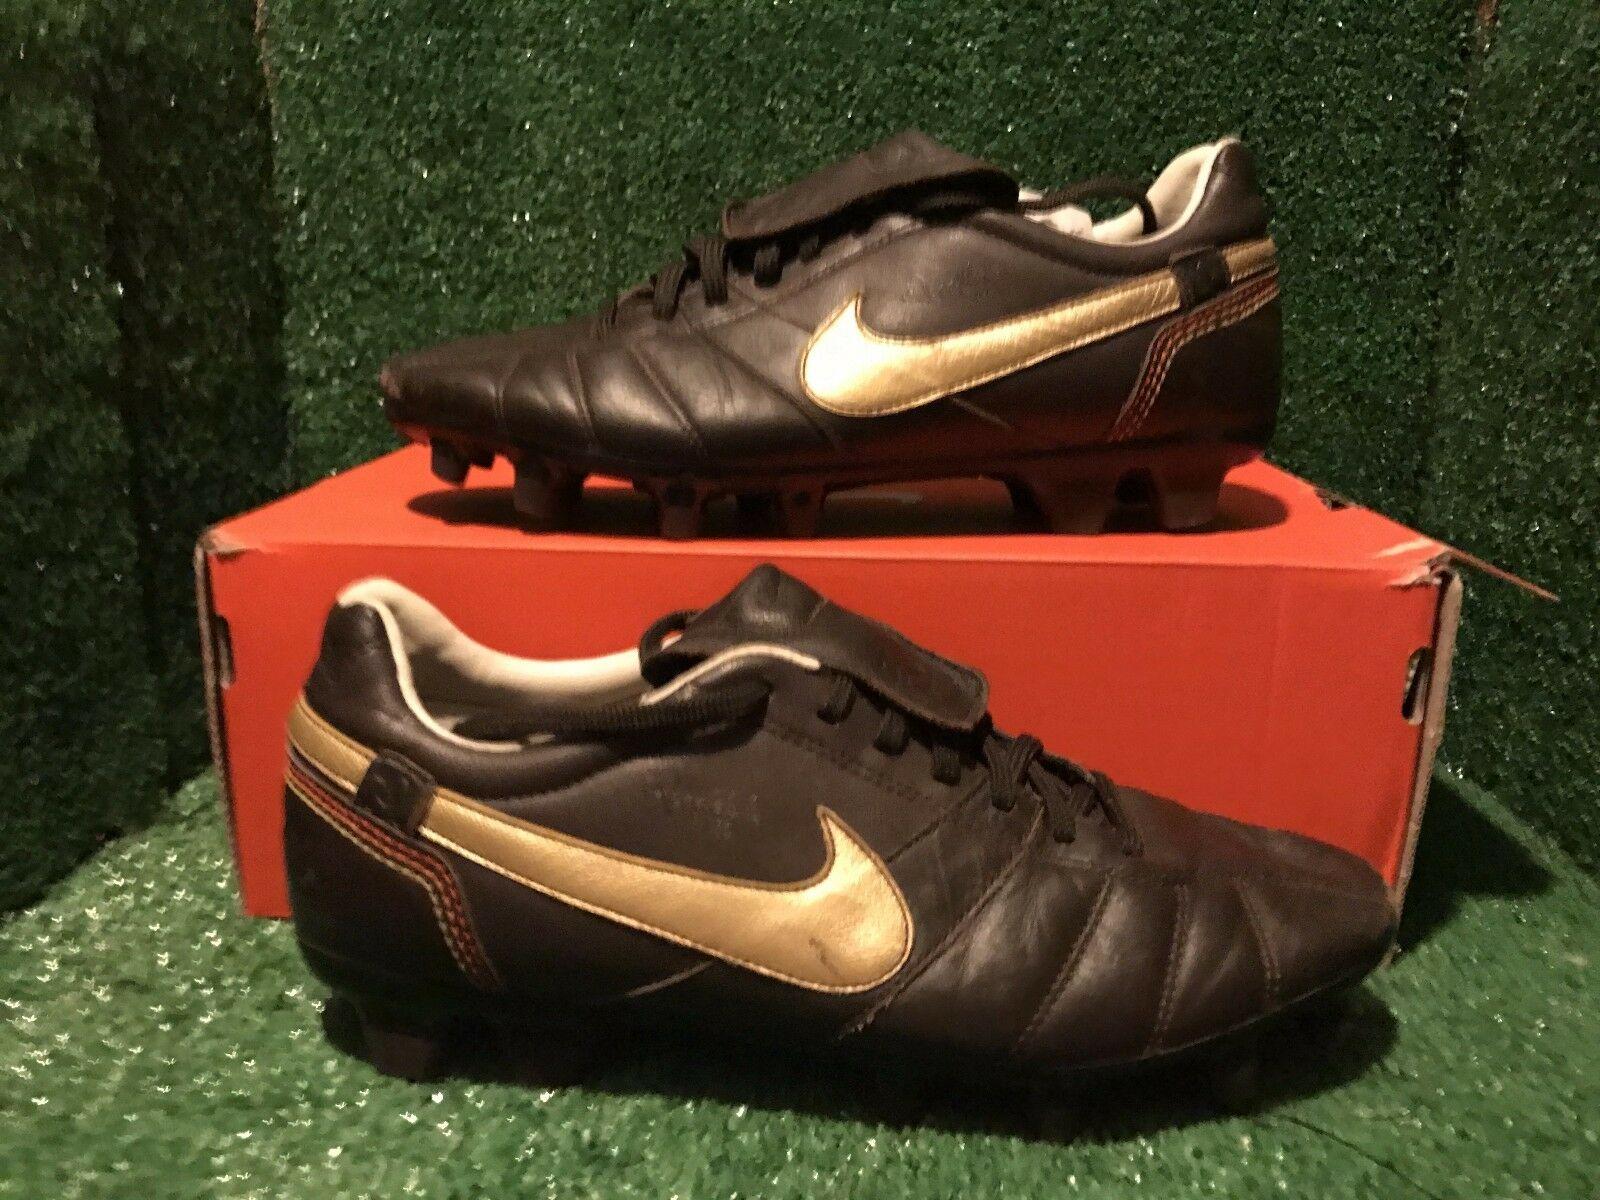 NIKE TIEMPO R10 RONALDINHO T90 SOCCER SHOES Size 7 8 41